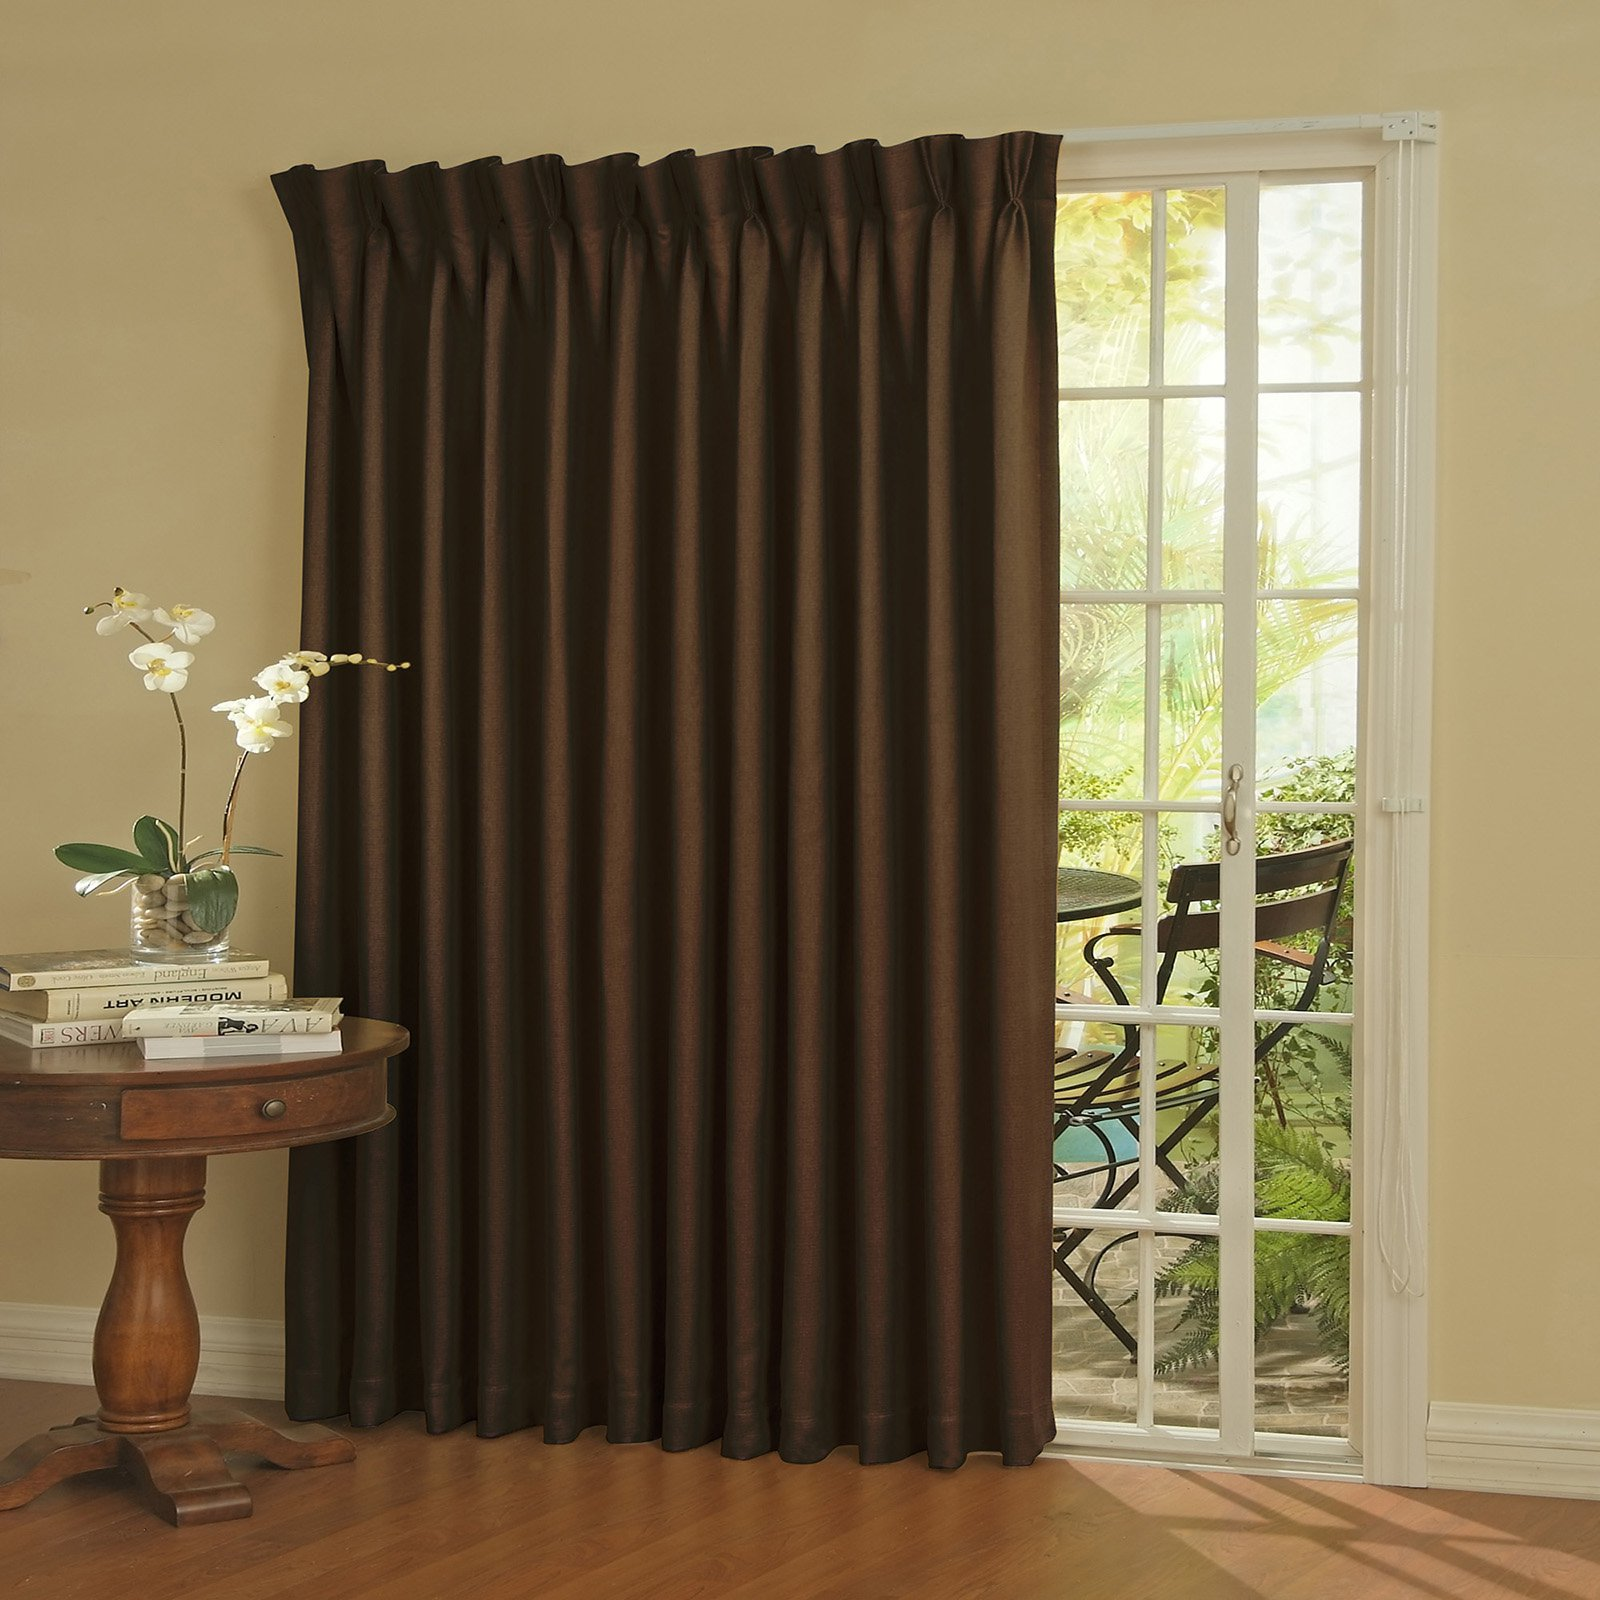 Eclipse Thermal Blackout Patio Door Curtain Panel   Walmart.com